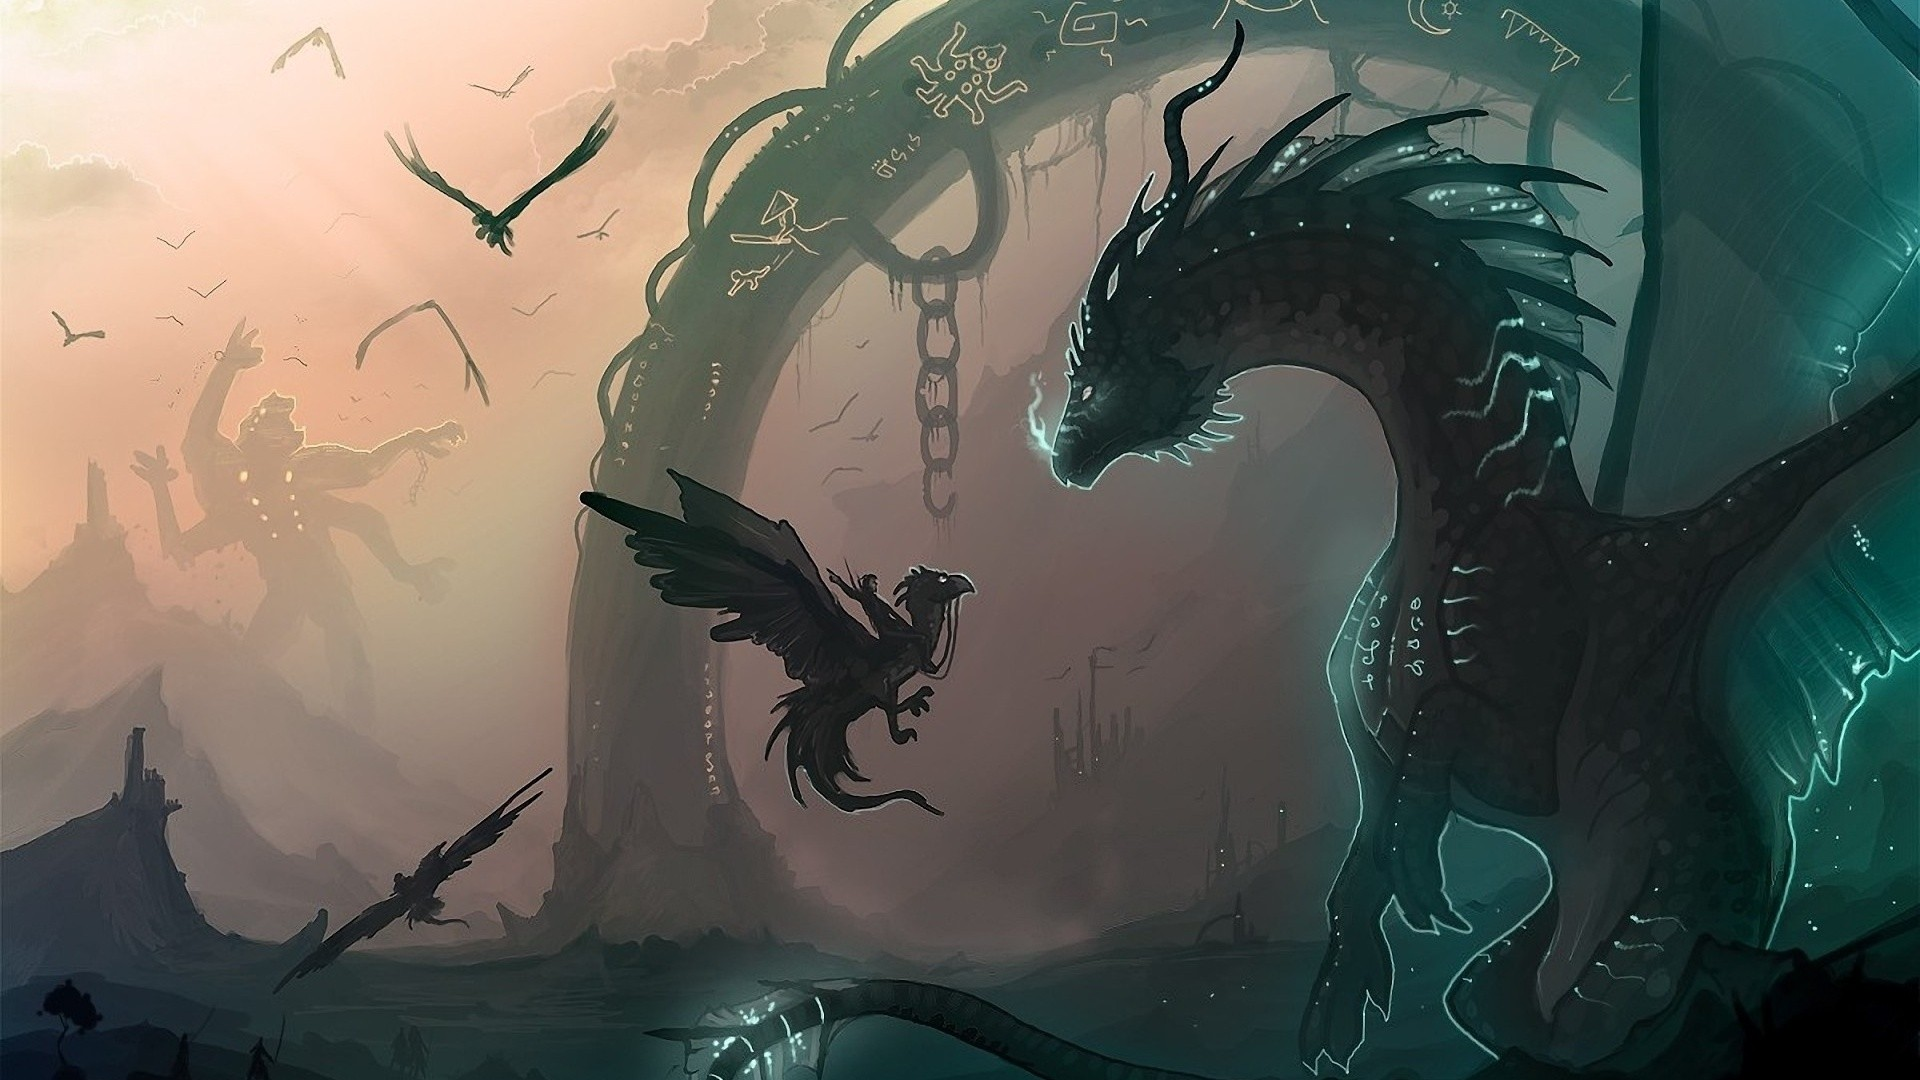 Dragon wallpaper hd 1080p download free amazing - Dragon backgrounds 1920x1080 ...